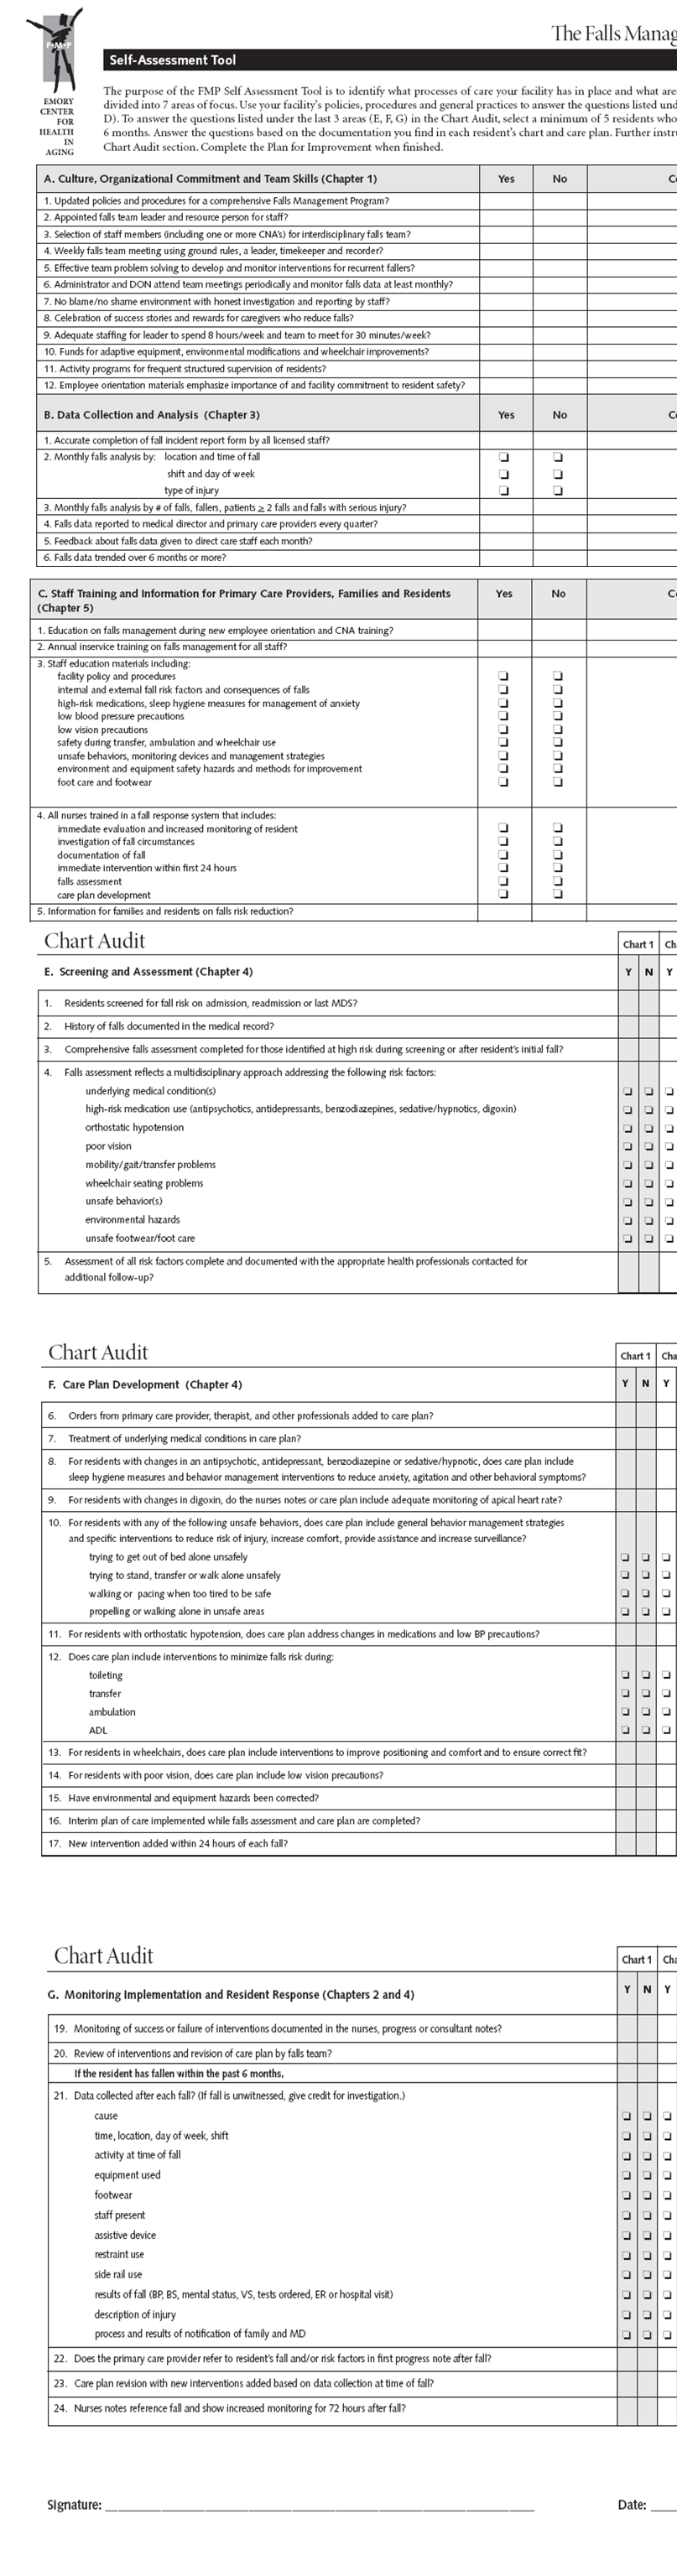 All  pages of the FMP Self-Assessment Tool. Go to [D] Text Description for details.